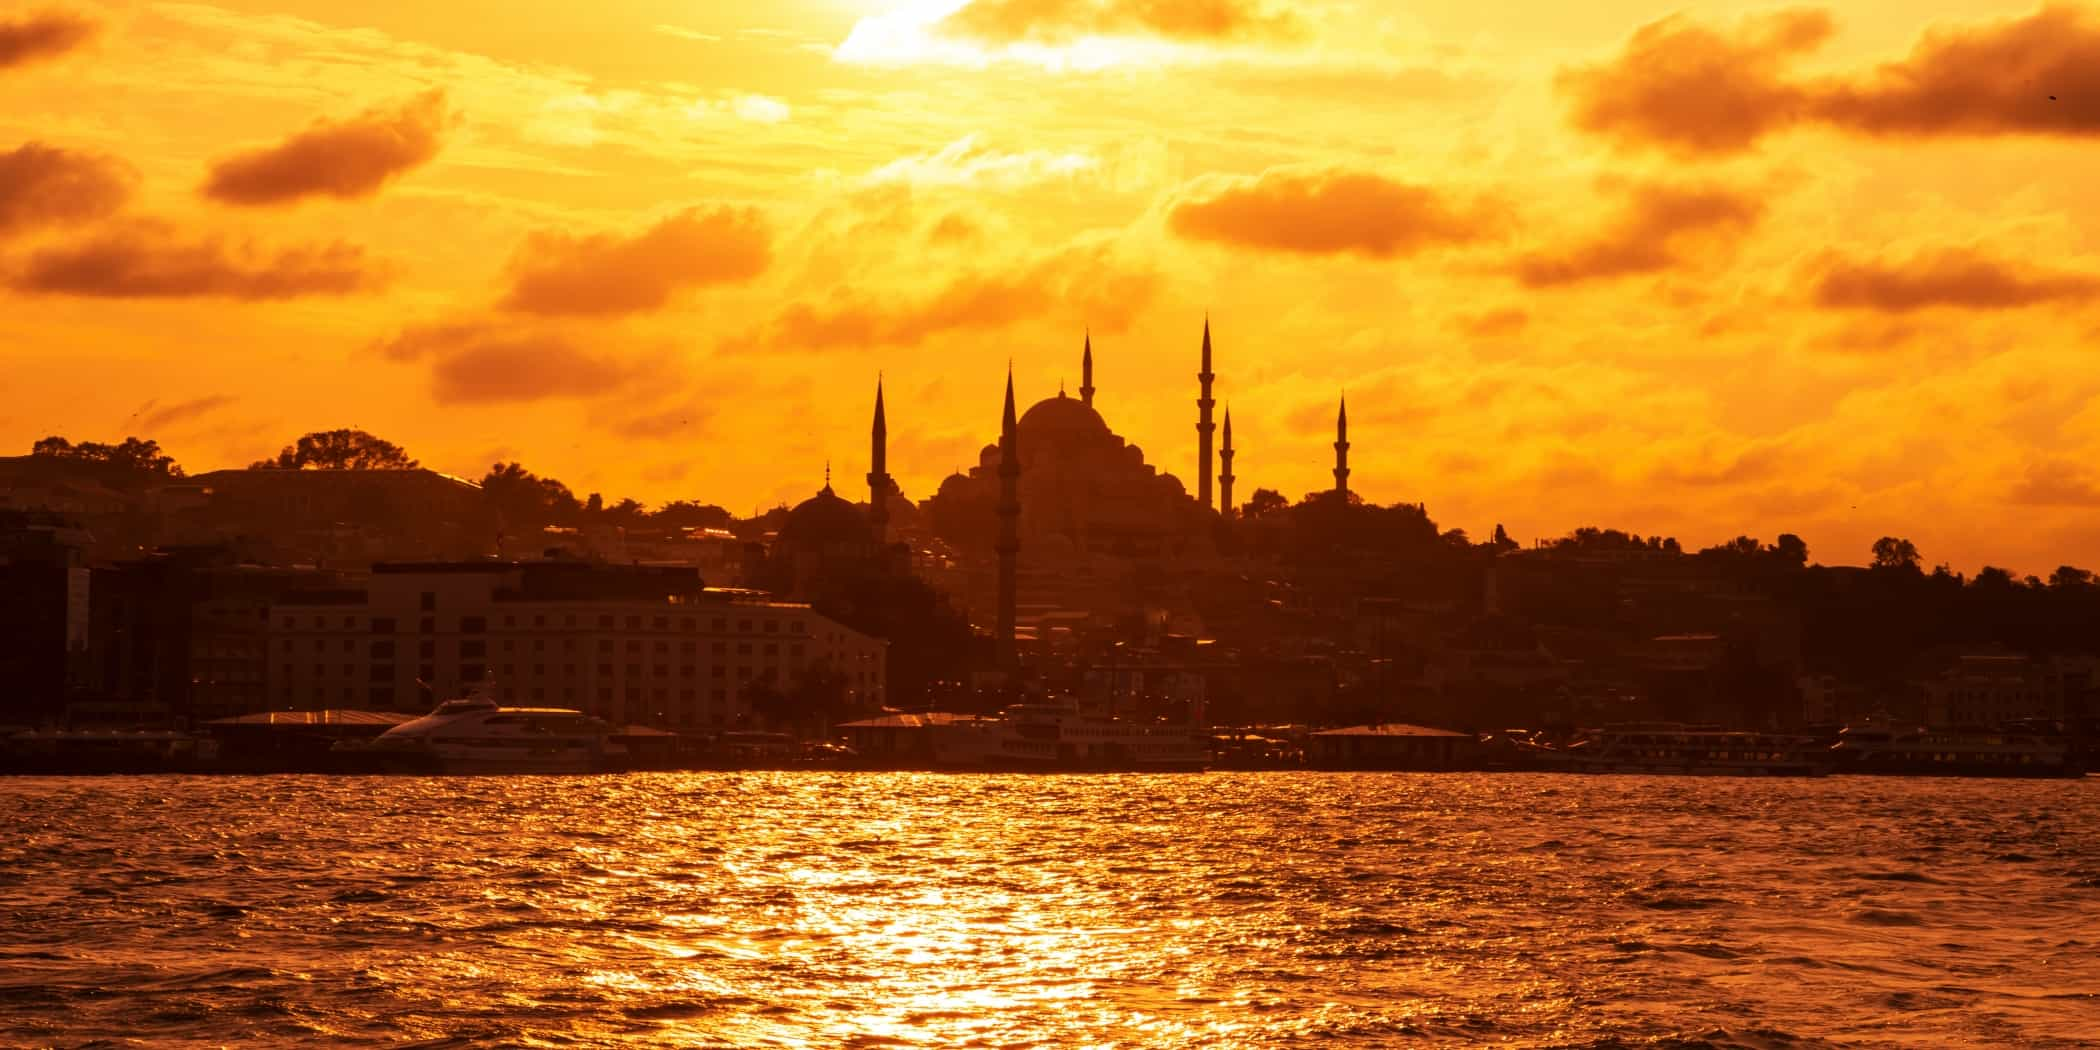 Istanbul sunset from the Bosphorus